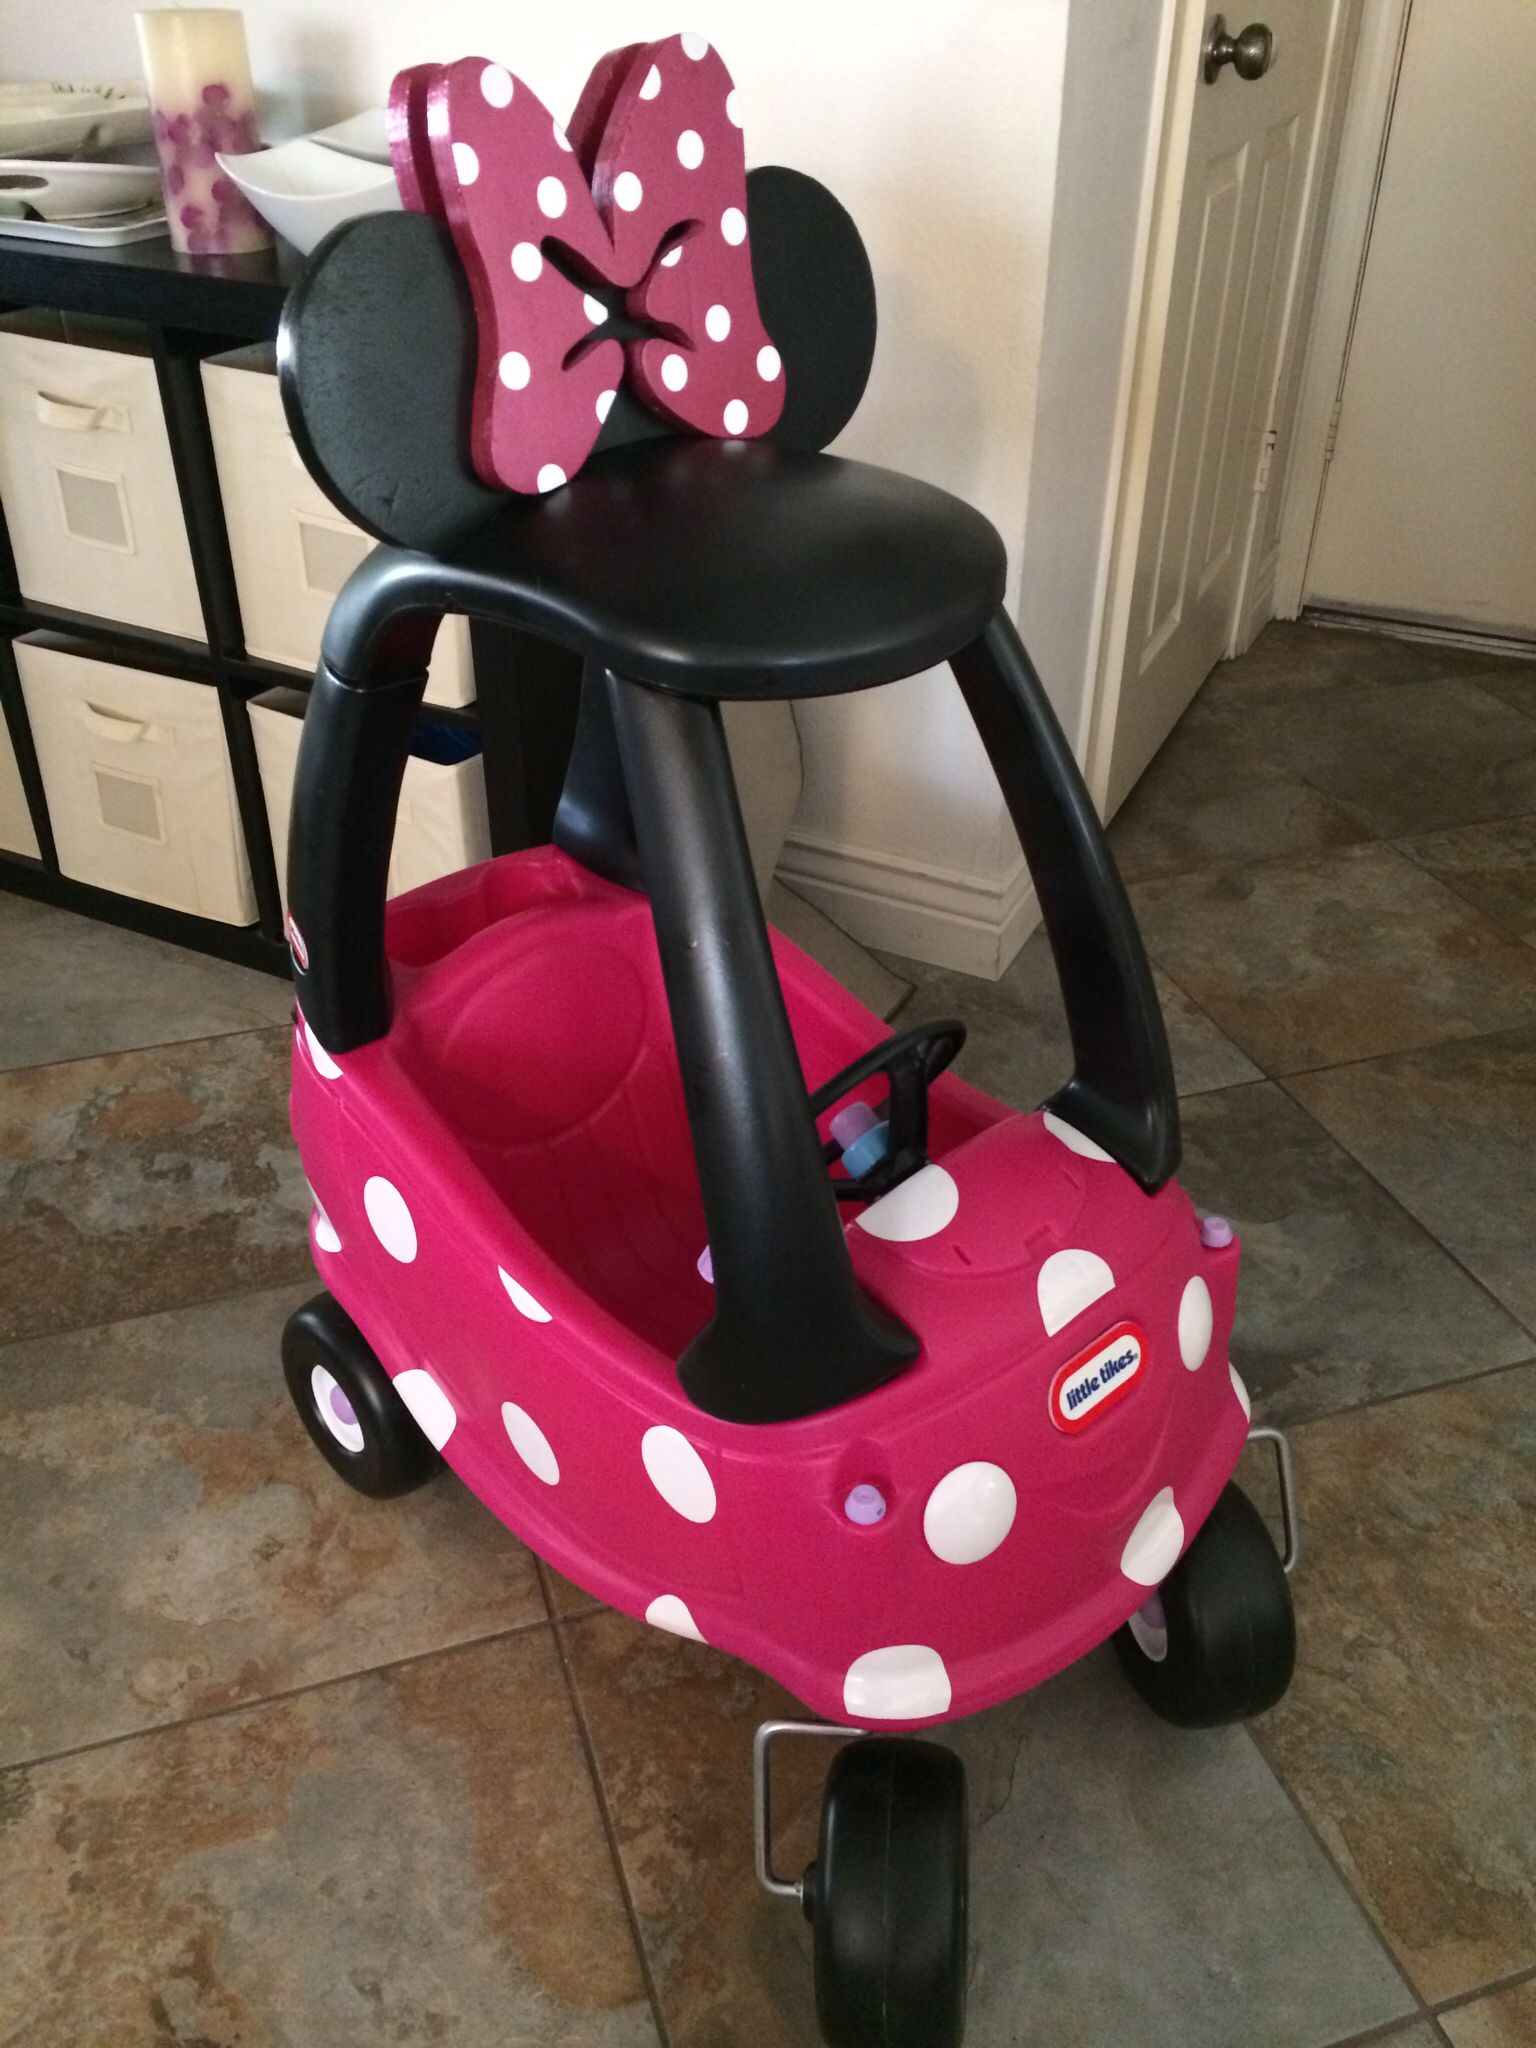 Minnie Mouse First Birthday Car Cozy Coupe Party Ideas My Hubby Made This For Our Daughters 1st